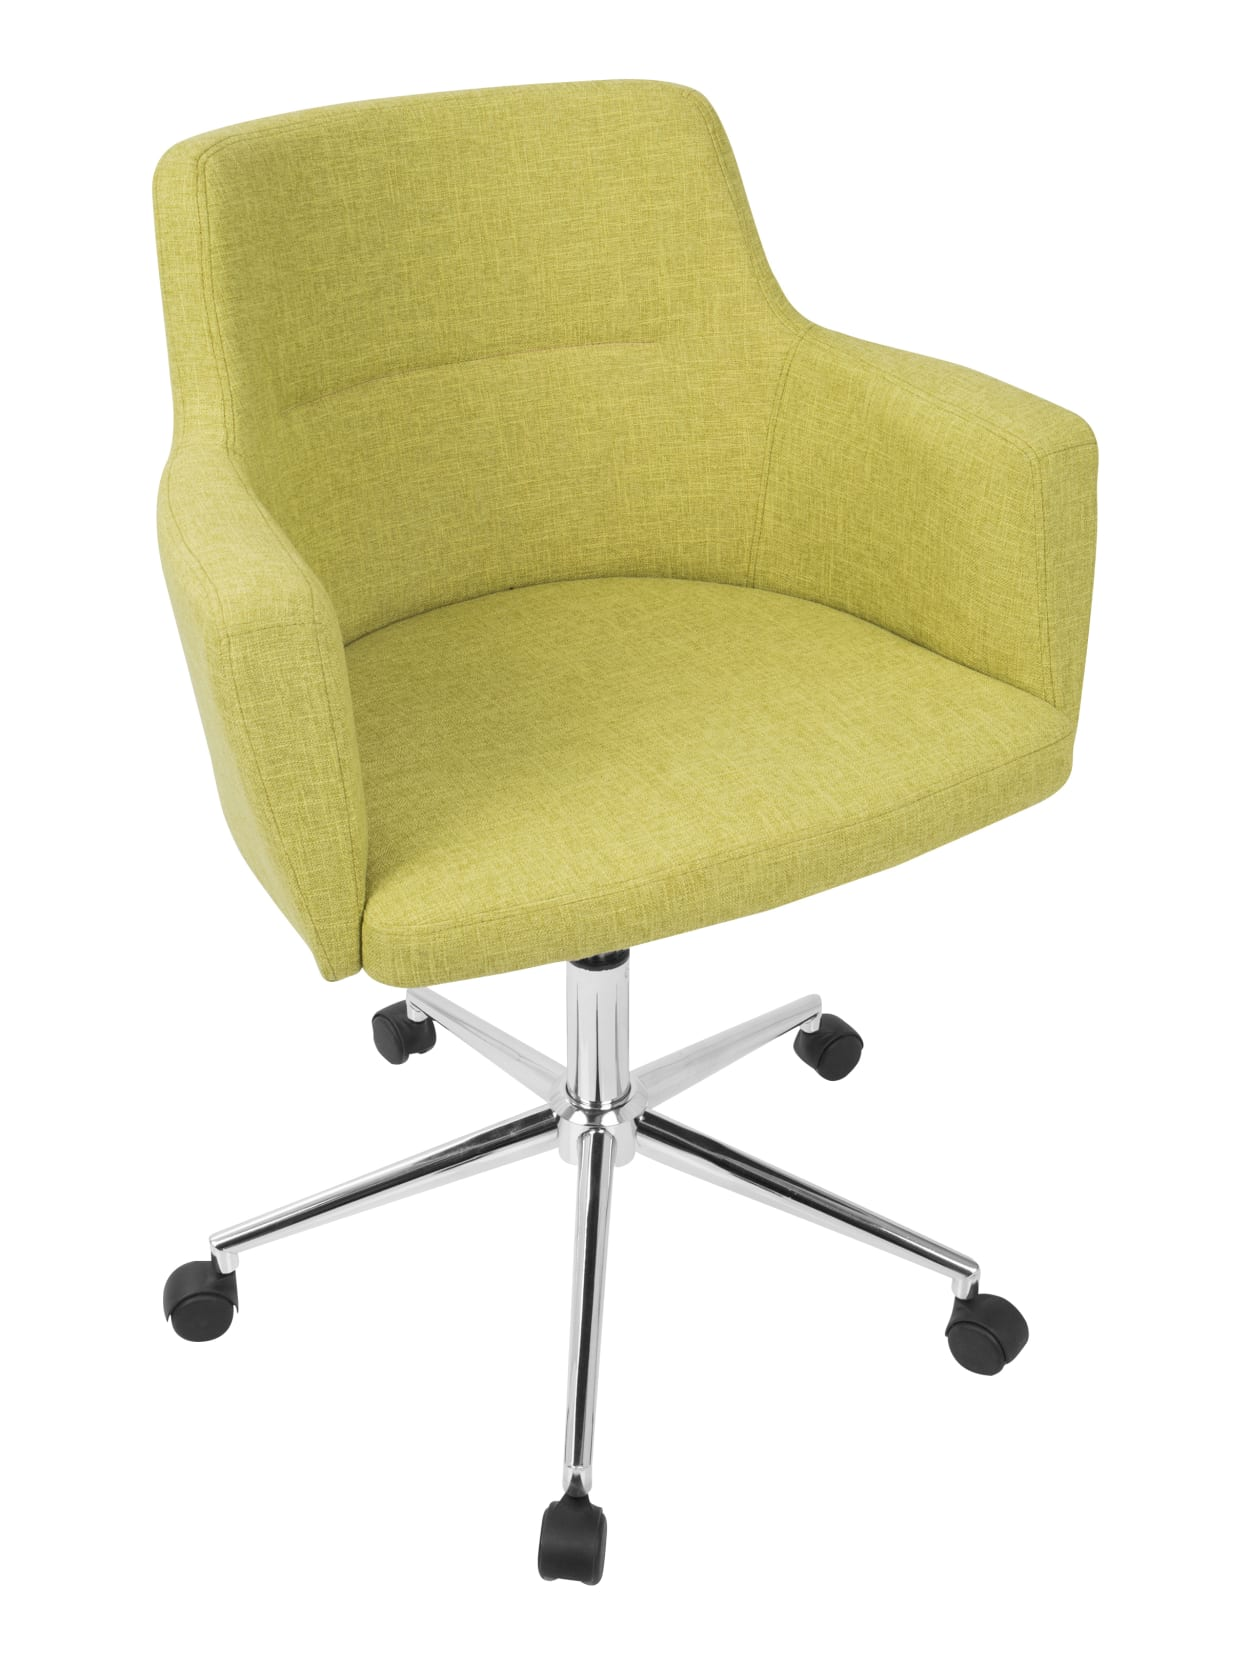 Lumisource Andrew Office Chair Lime Green - Office Depot